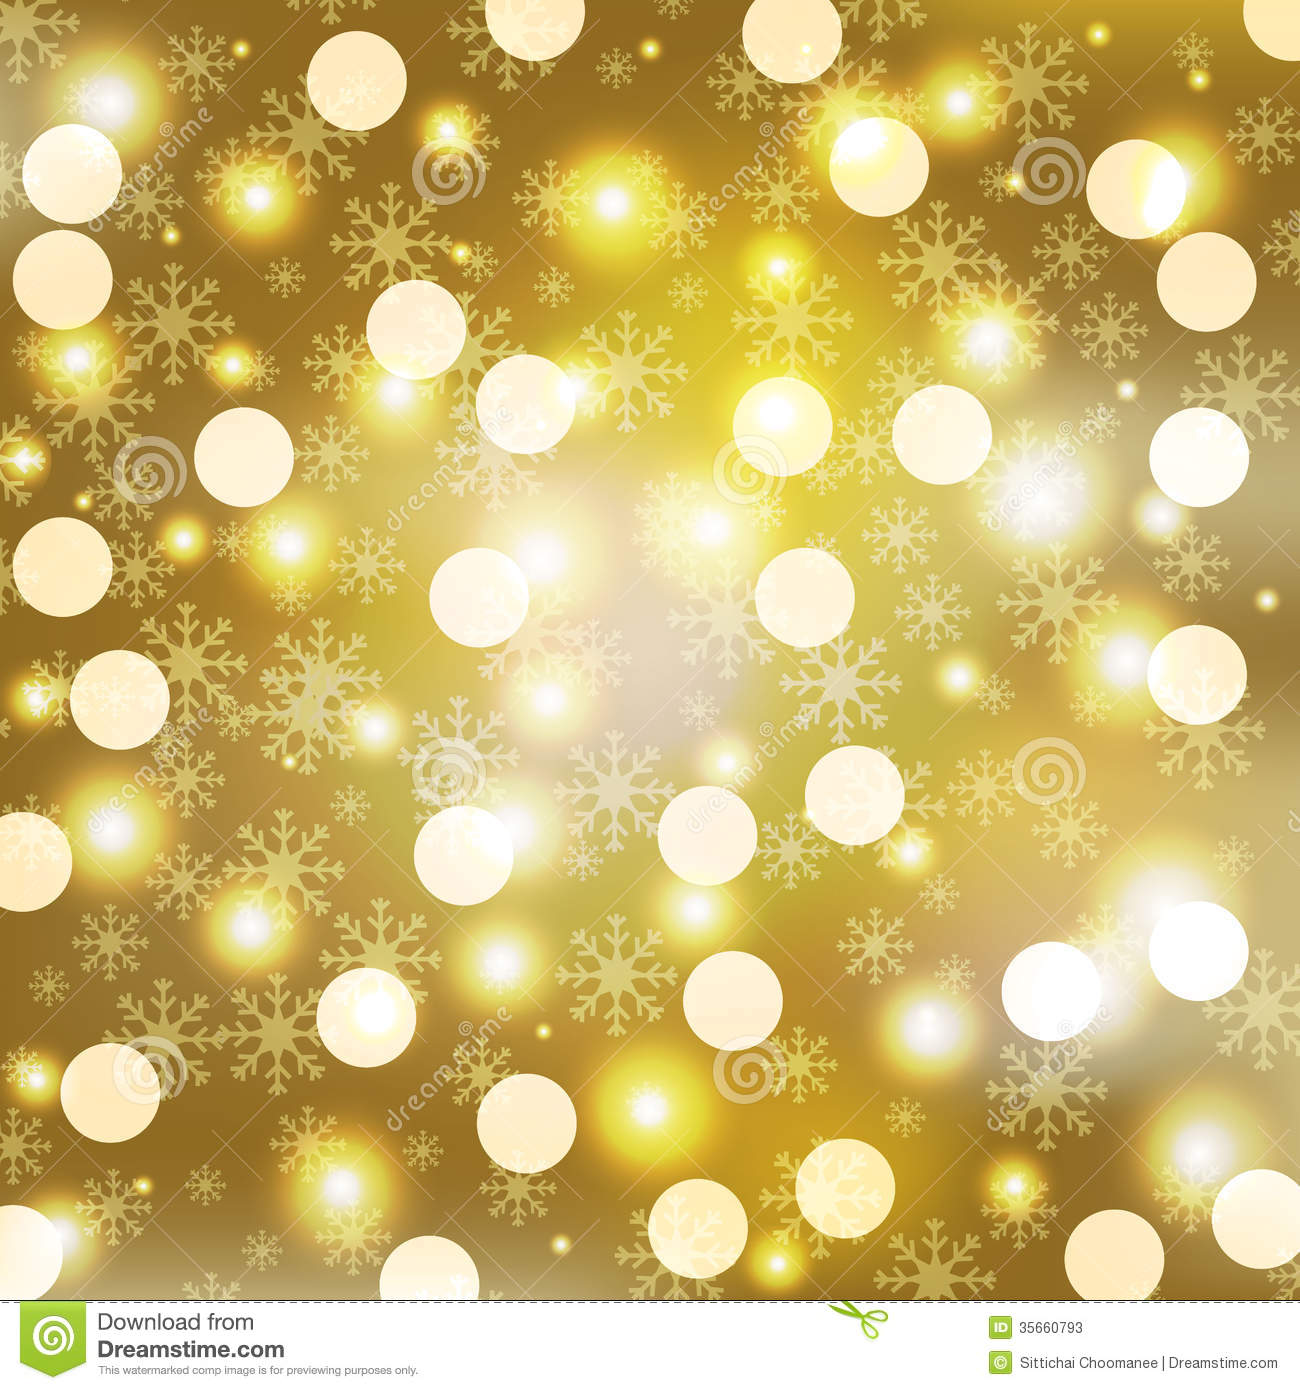 Christmas Desktop Backgrounds Stock Photos - Image: 35660793: www.dreamstime.com/stock-photos-christmas-desktop-backgrounds-gold...